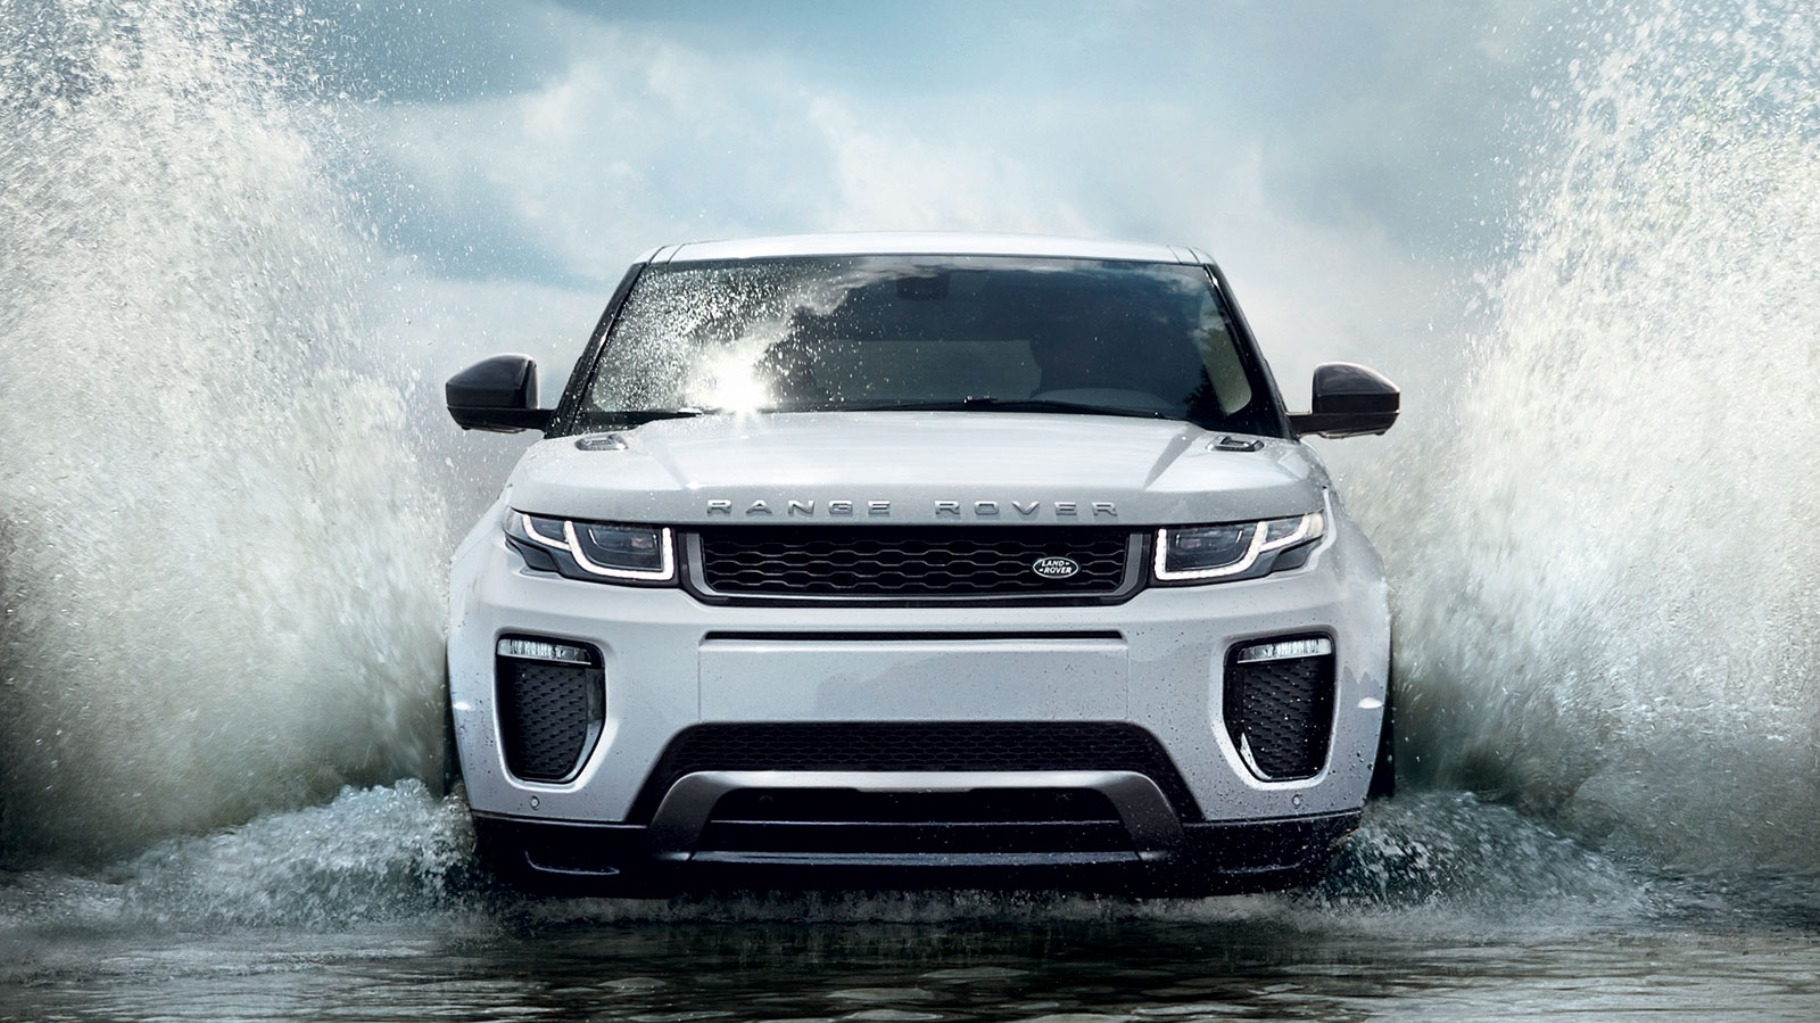 2019 Land Rover Evoque exterior white color uhd wide wallpaper 1820x1023